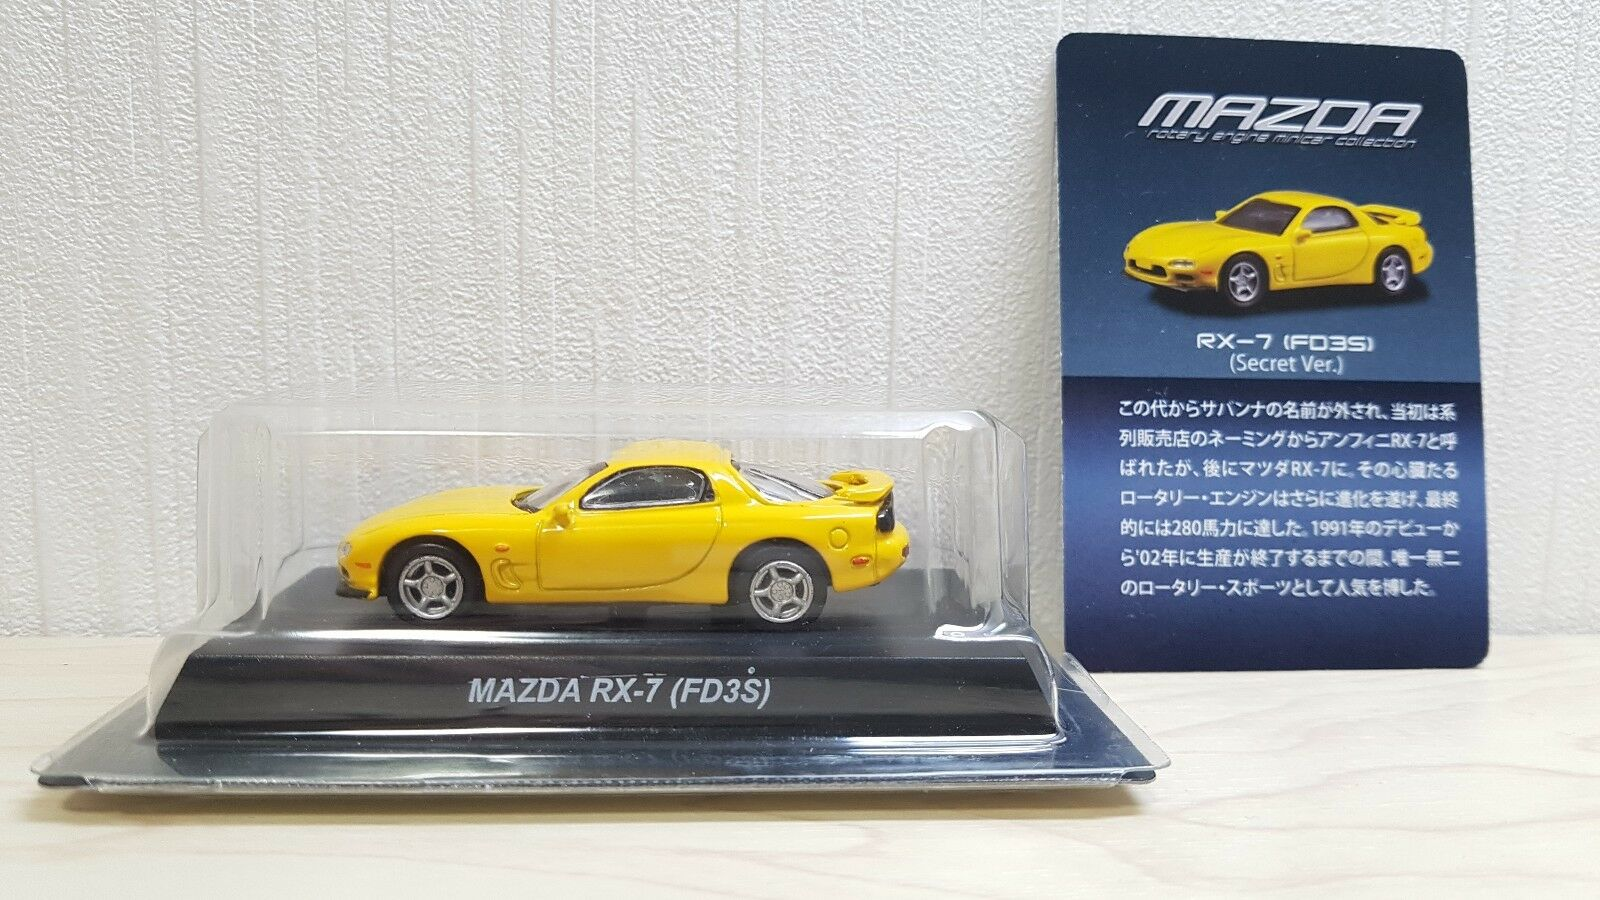 Kyosho  1 64 MAZDA RX-7 FD3S jaune SECRET Ver. diecast voiture model  exclusif